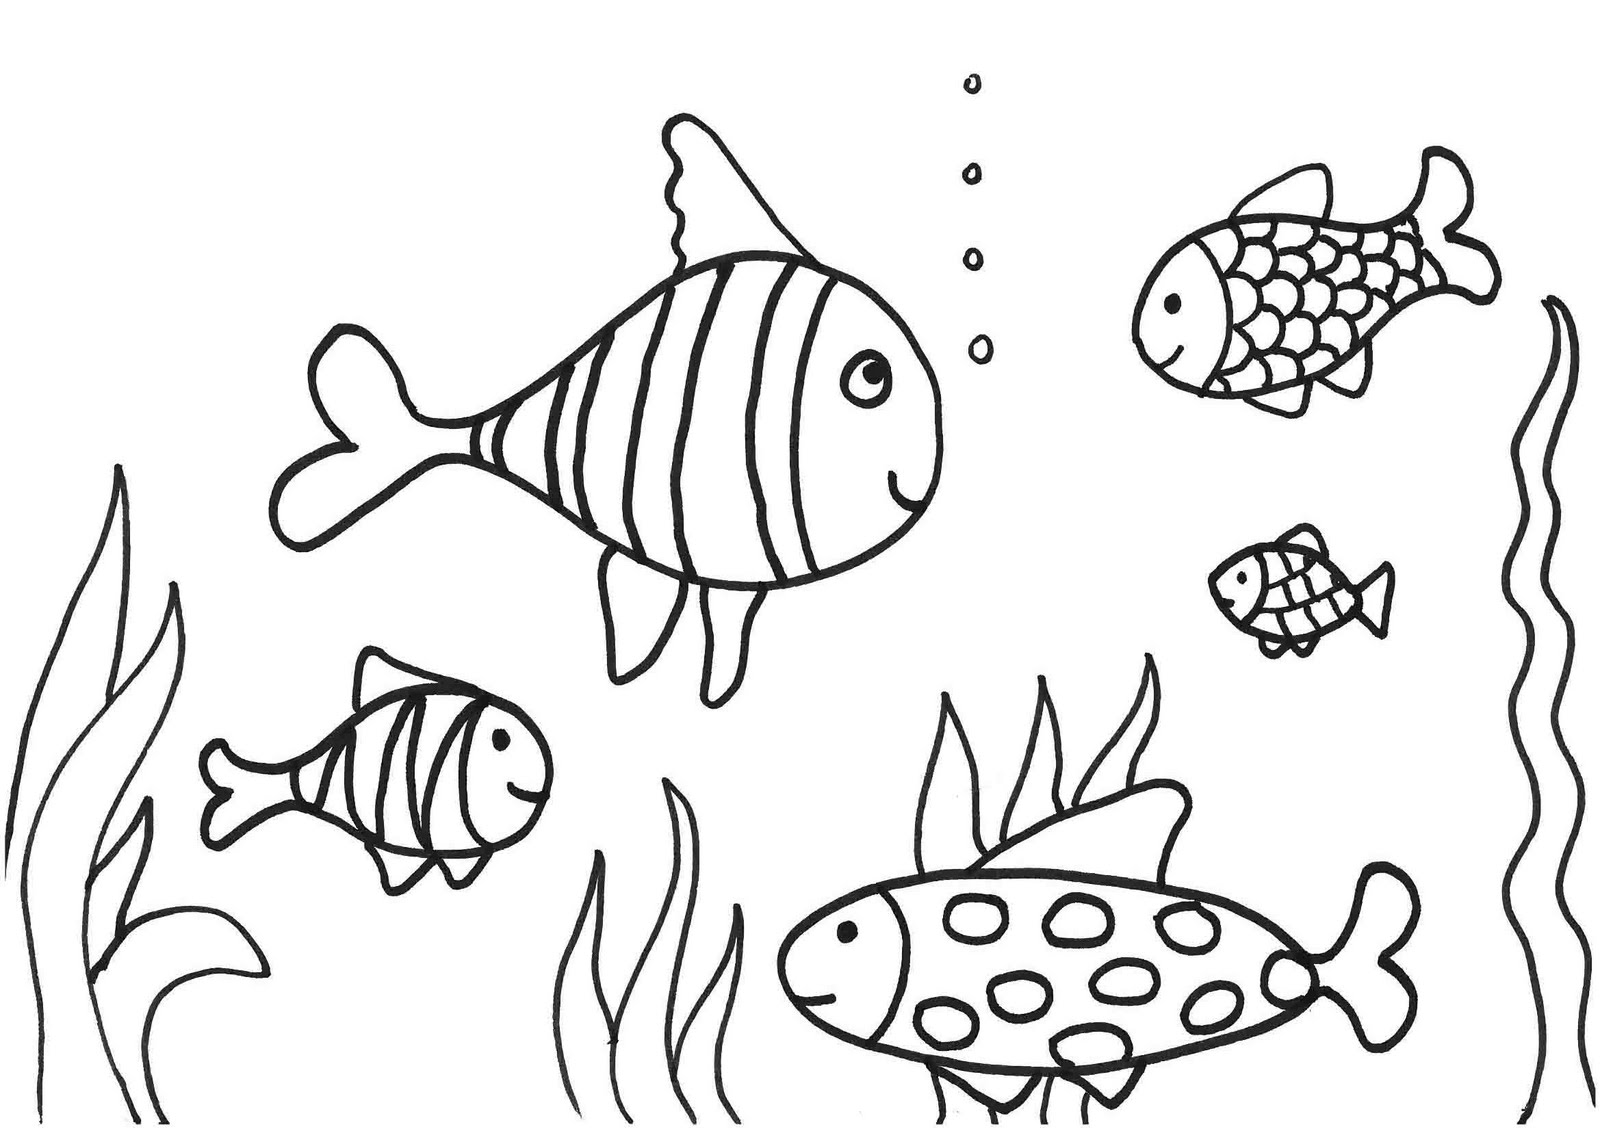 Simple fish coloring pages download and print for free for Free coloring fish pages